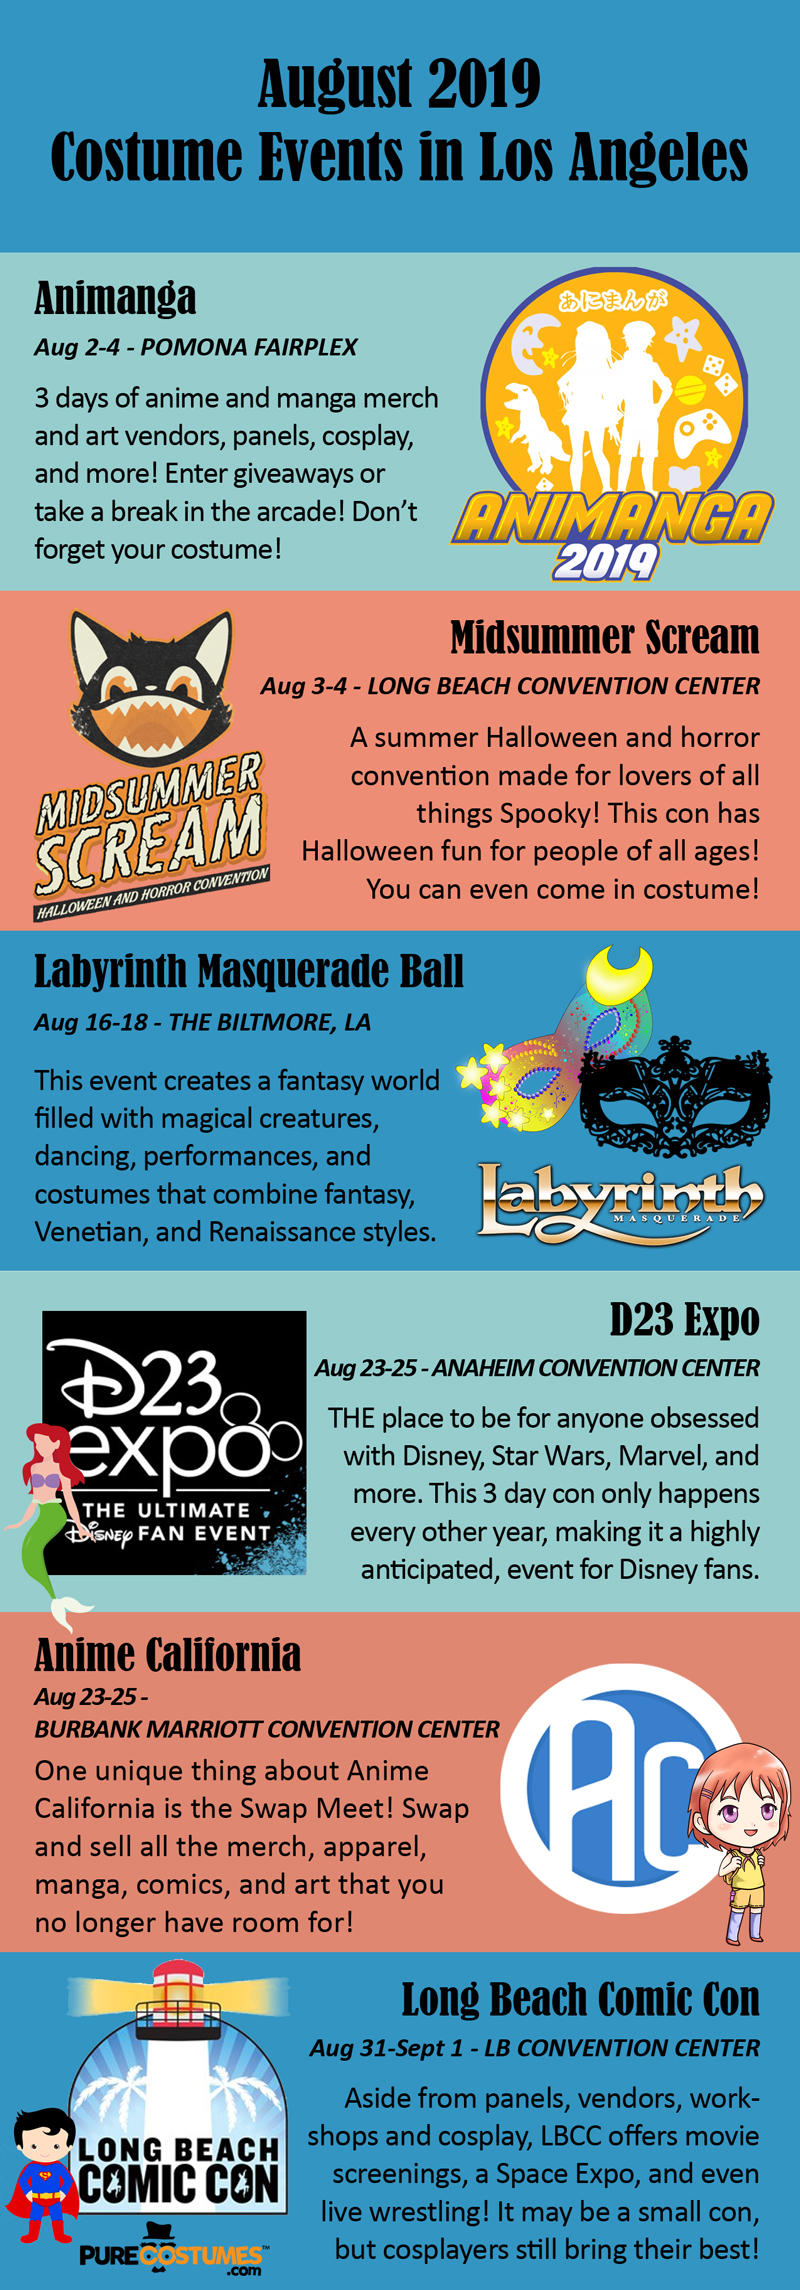 August 2019 Los Angeles Costume Events